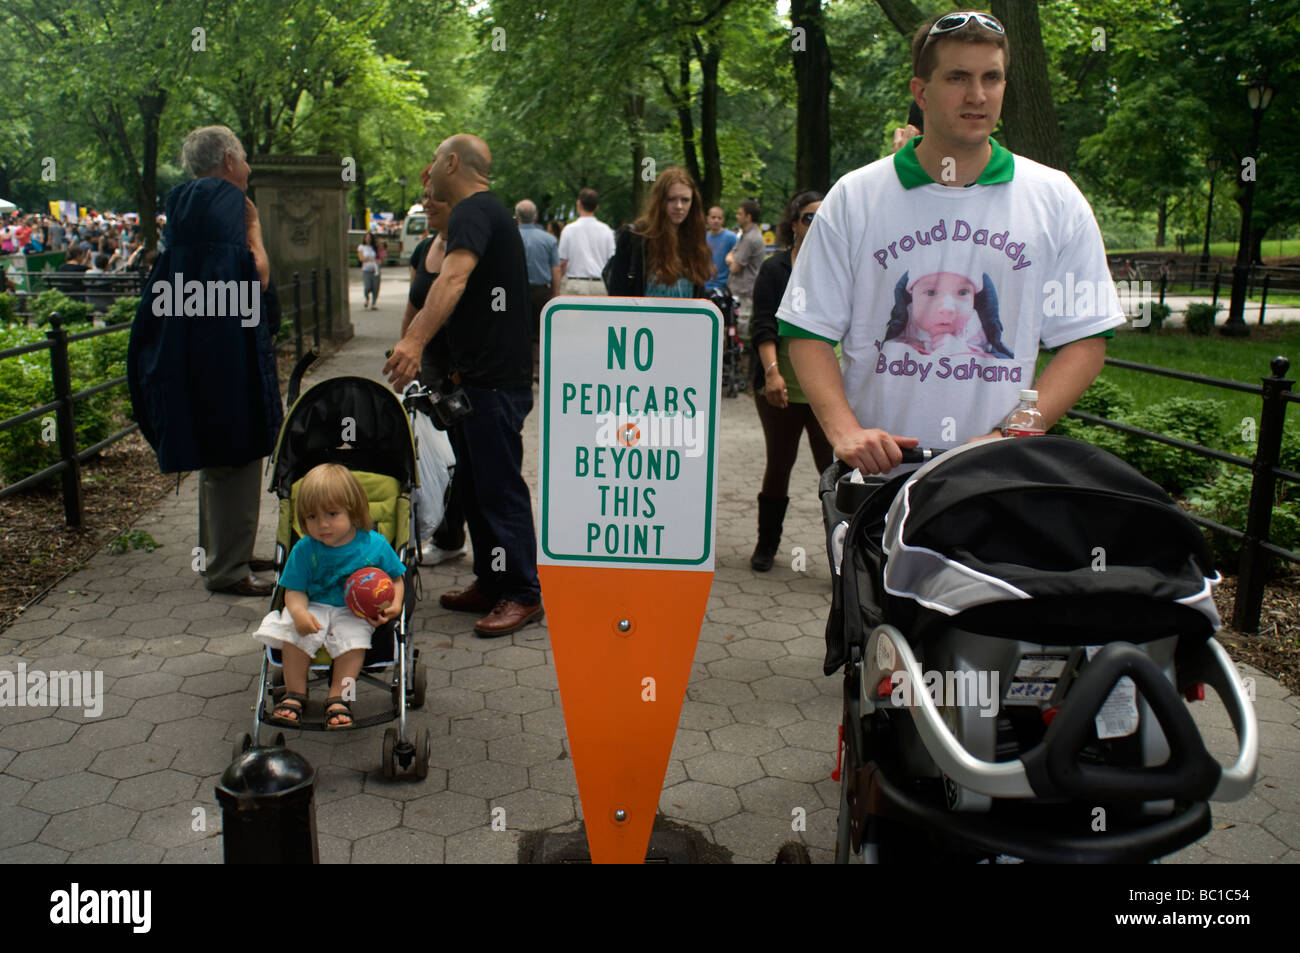 People and strollers pass a sign that prohibits pedicabs beyond this point in Central Park in New York - Stock Image